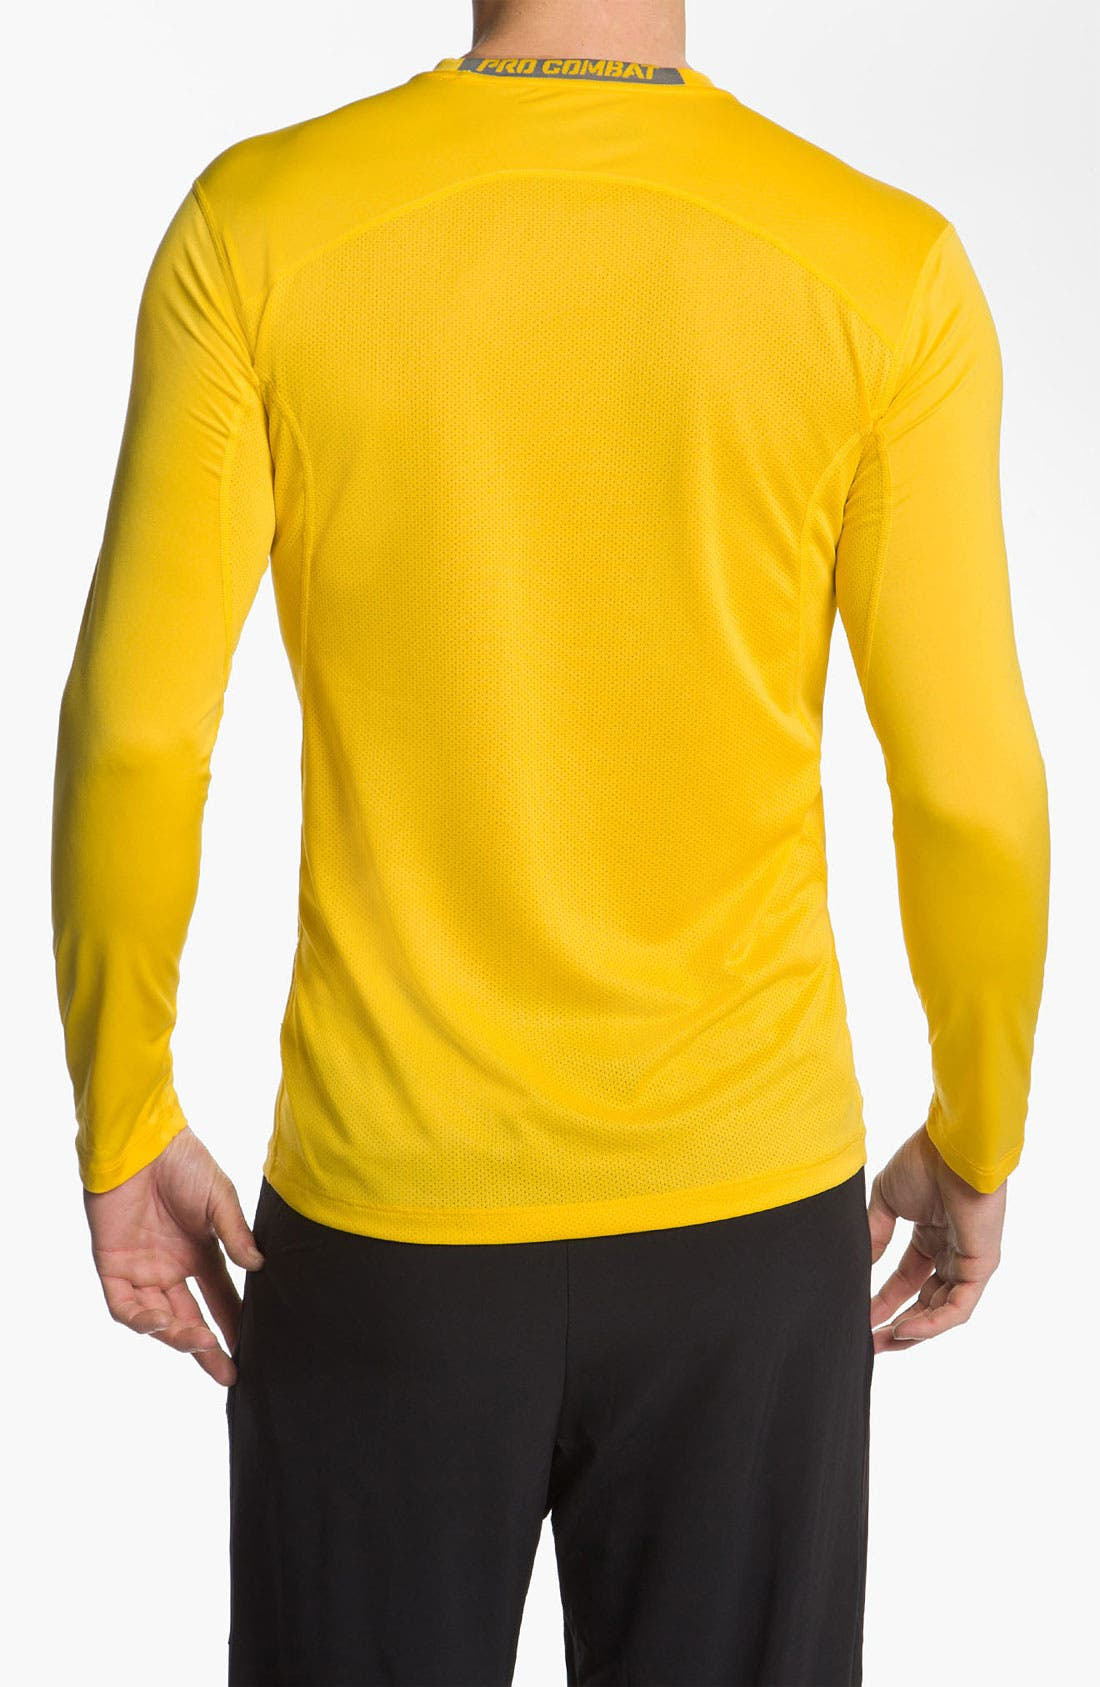 Alternate Image 2  - Nike 'Core 2.0' Fitted Long Sleeve T-Shirt (Regular Retail Price: $32.00)